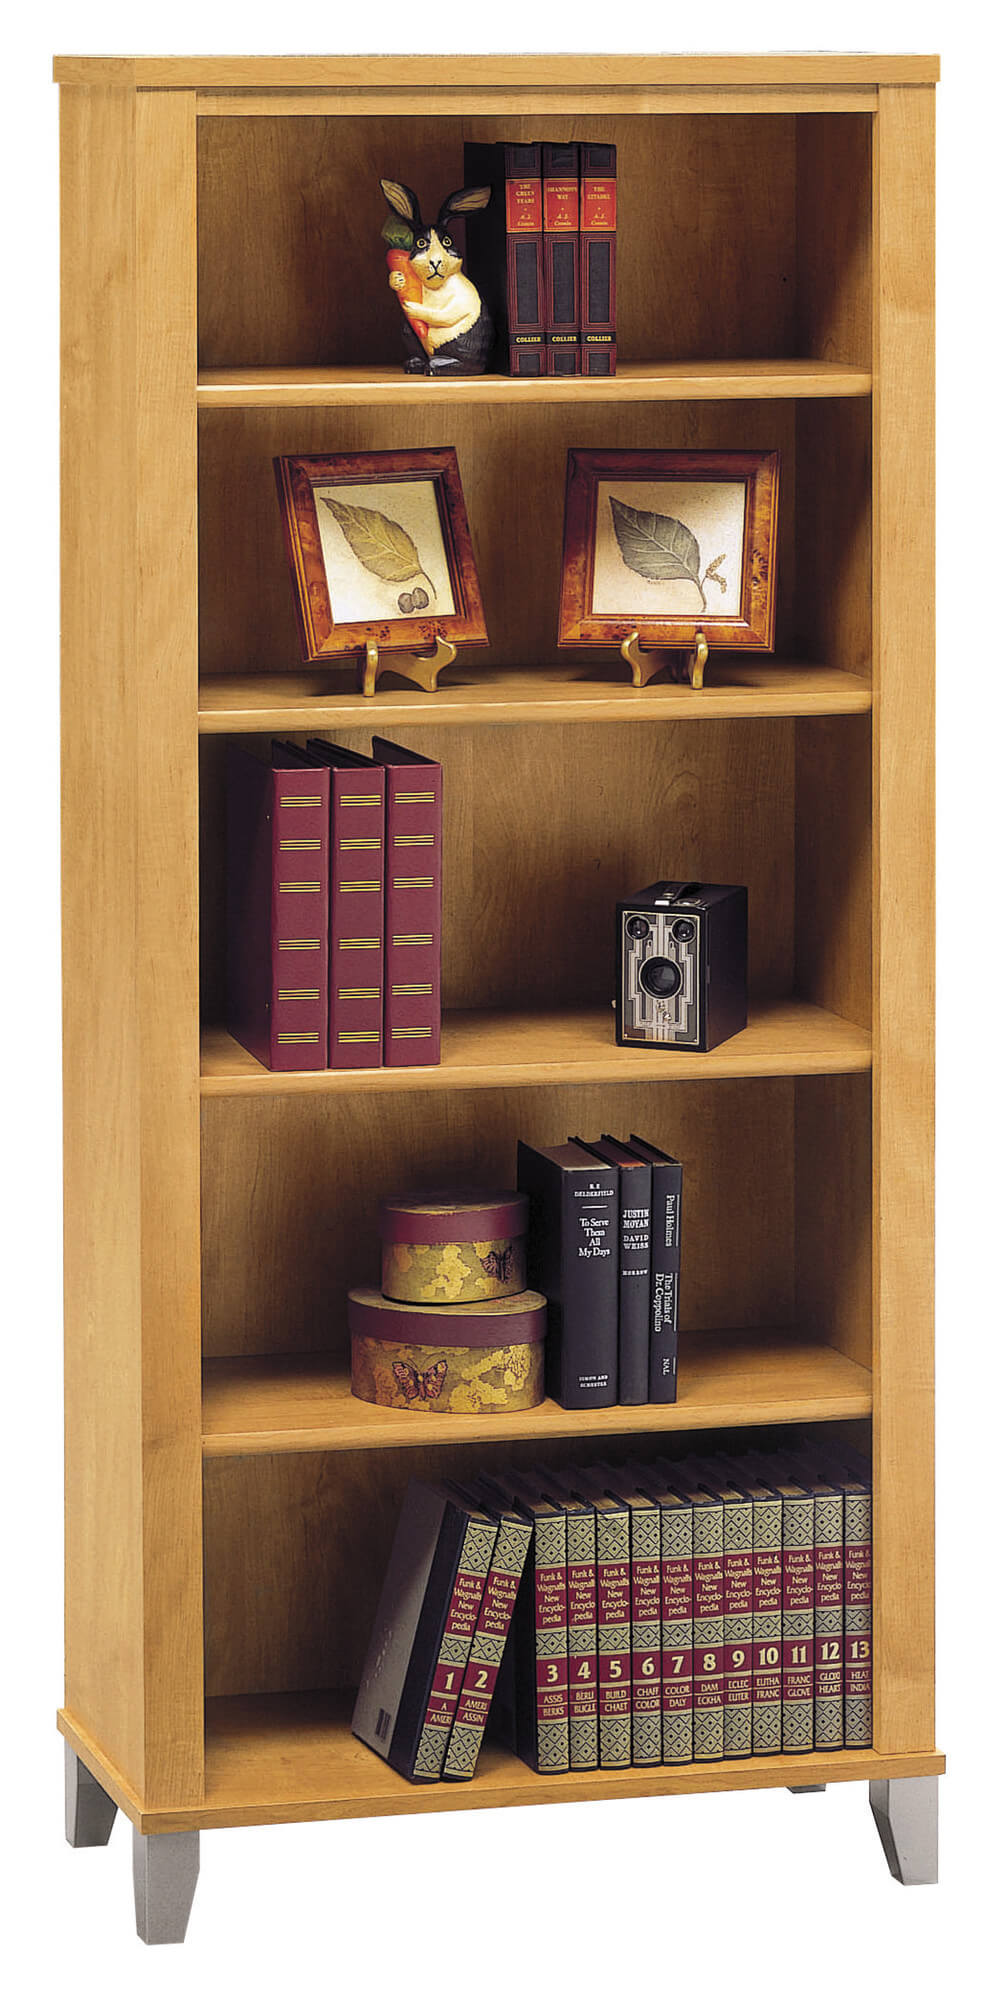 Wood frames comprise the most extensive and far reaching category of bookcases on the market today and in years past. The quintessential construction material, wood bookcases can be found in virtually any design and style.